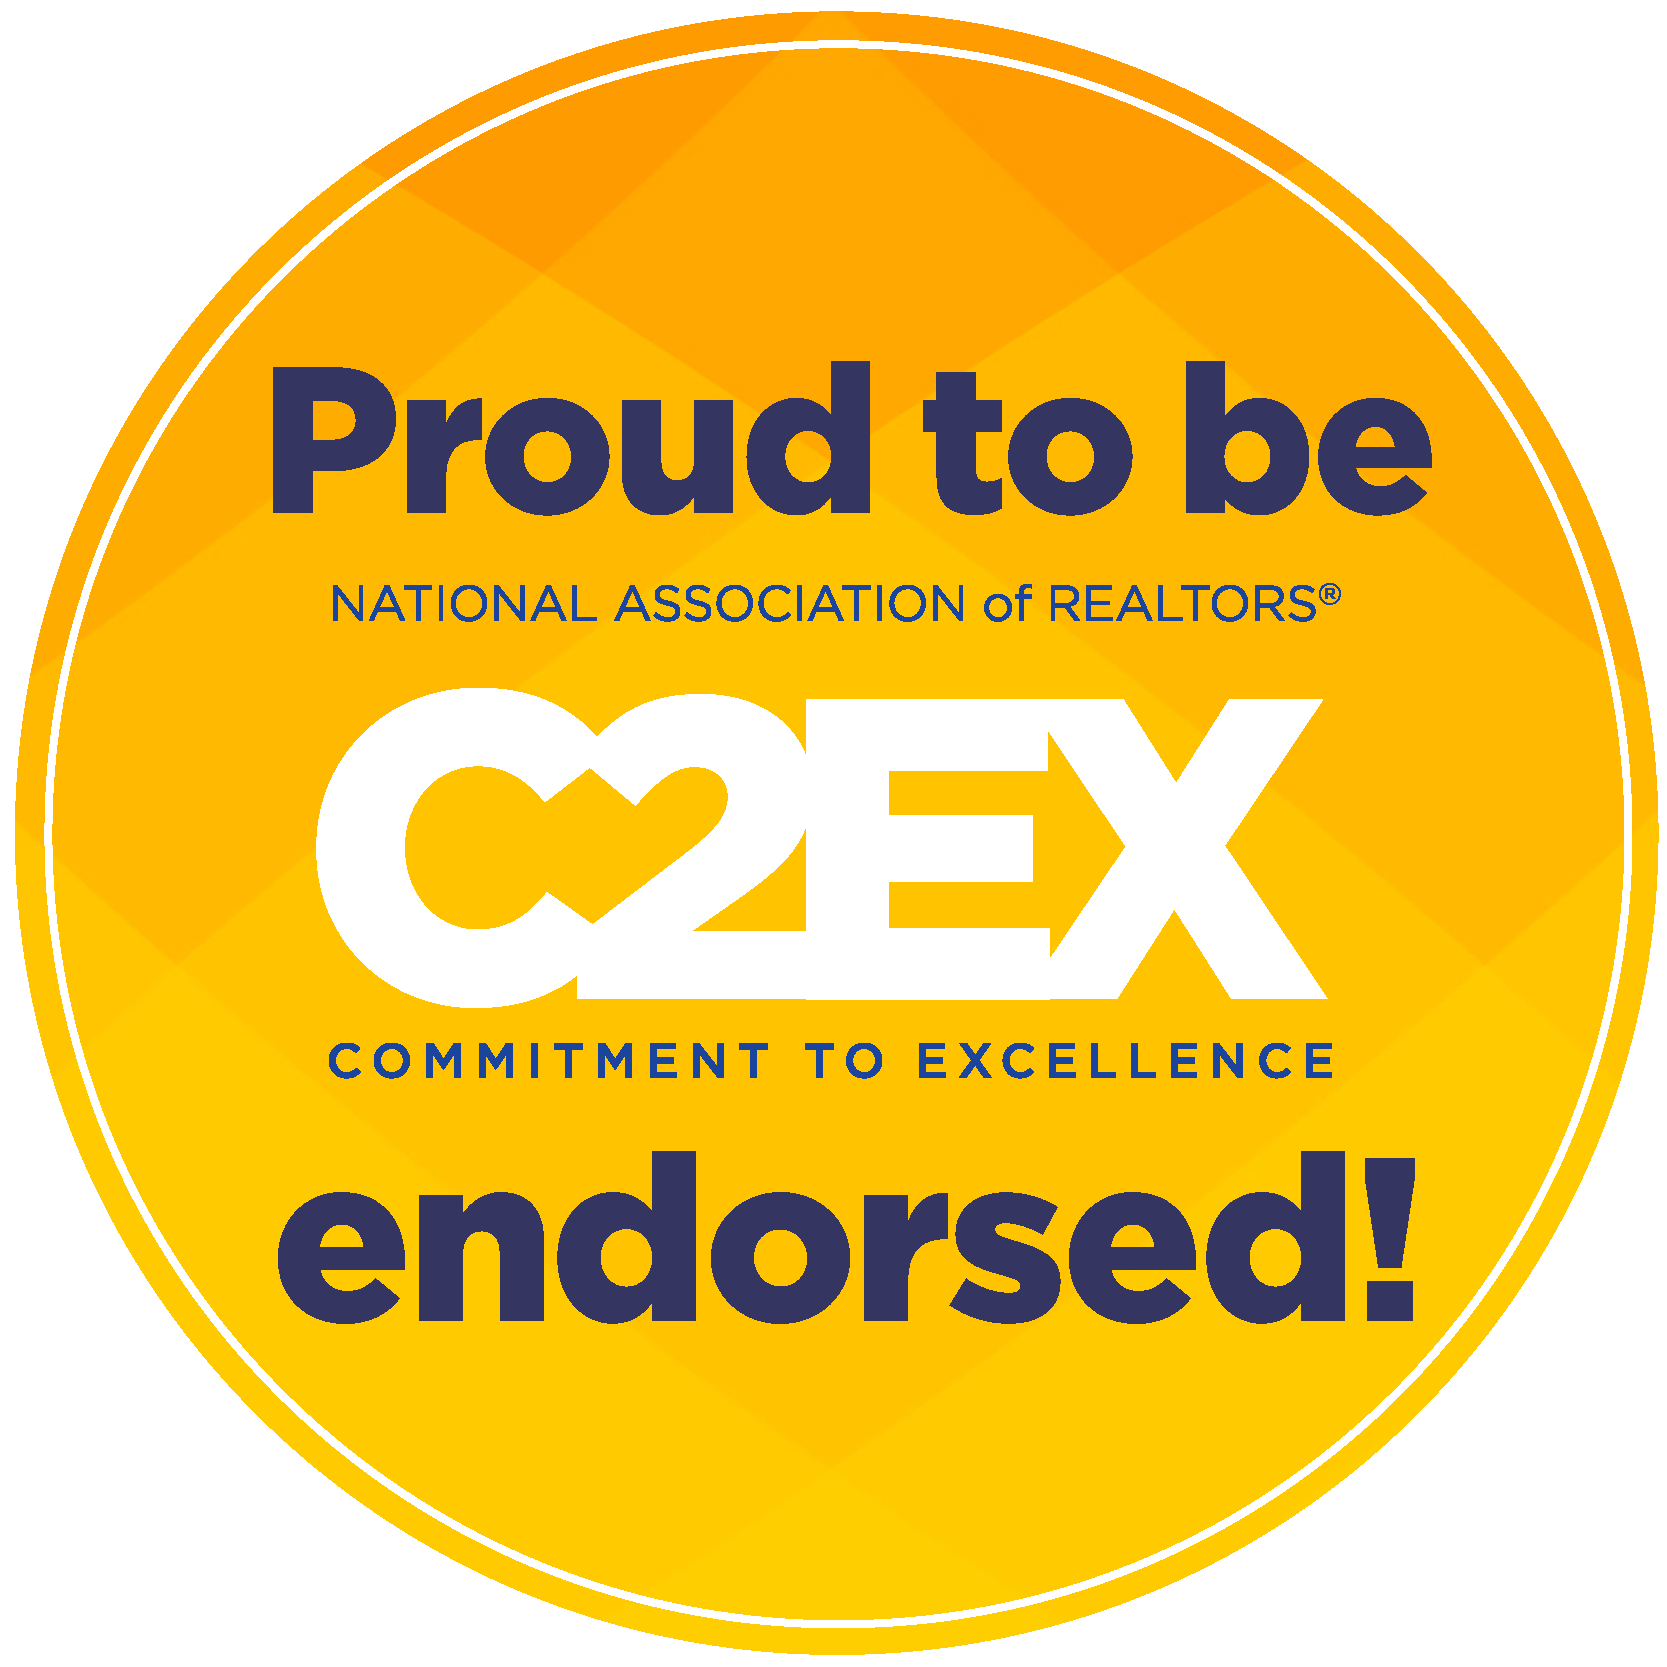 National Association of REALTORS® C2EX Endorsed